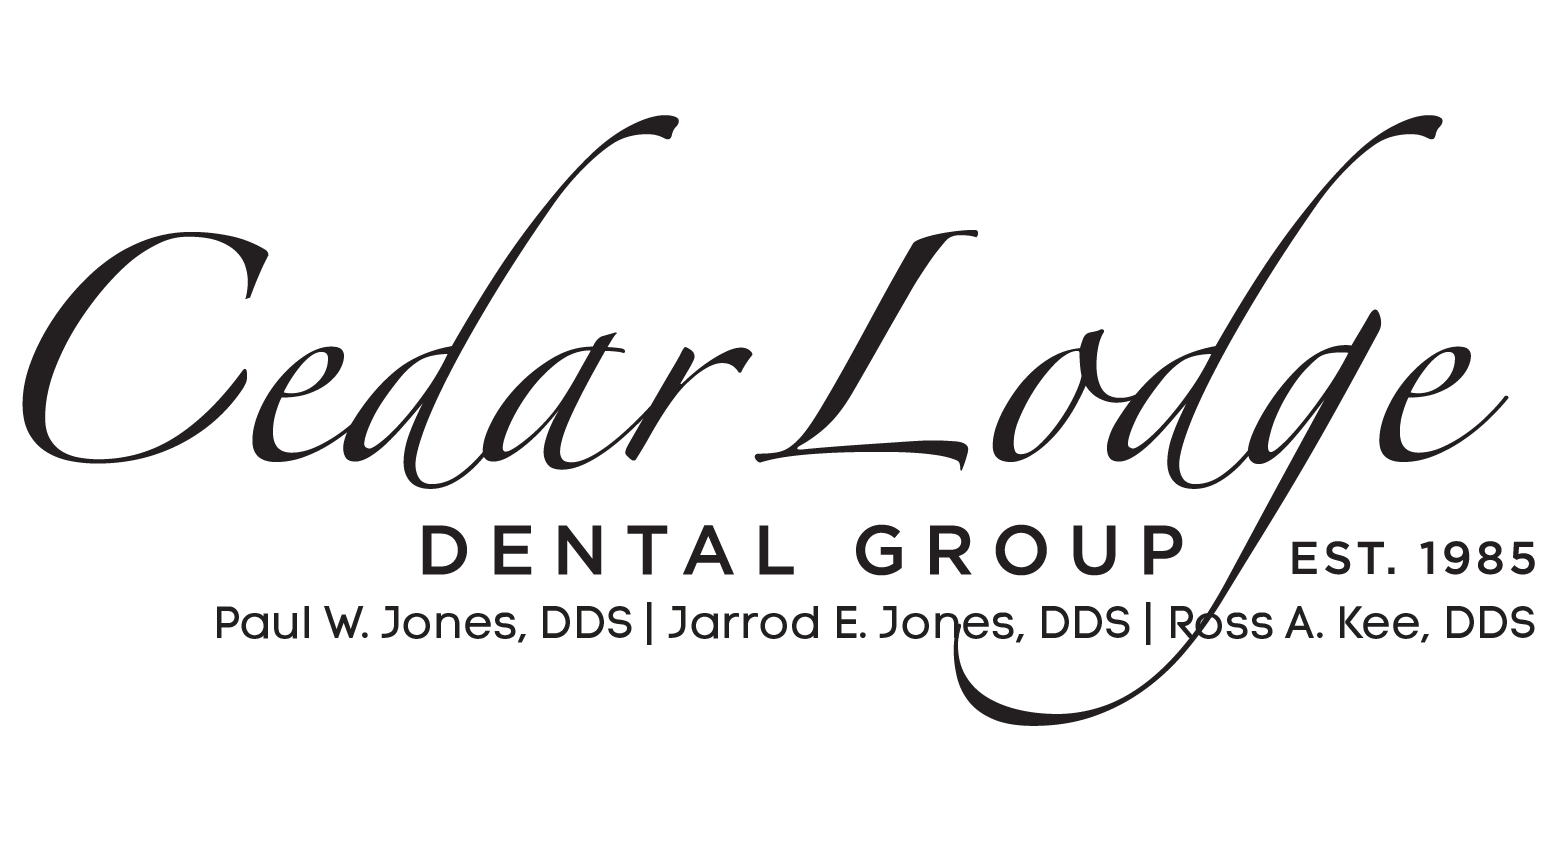 Cedar Lodge Dental